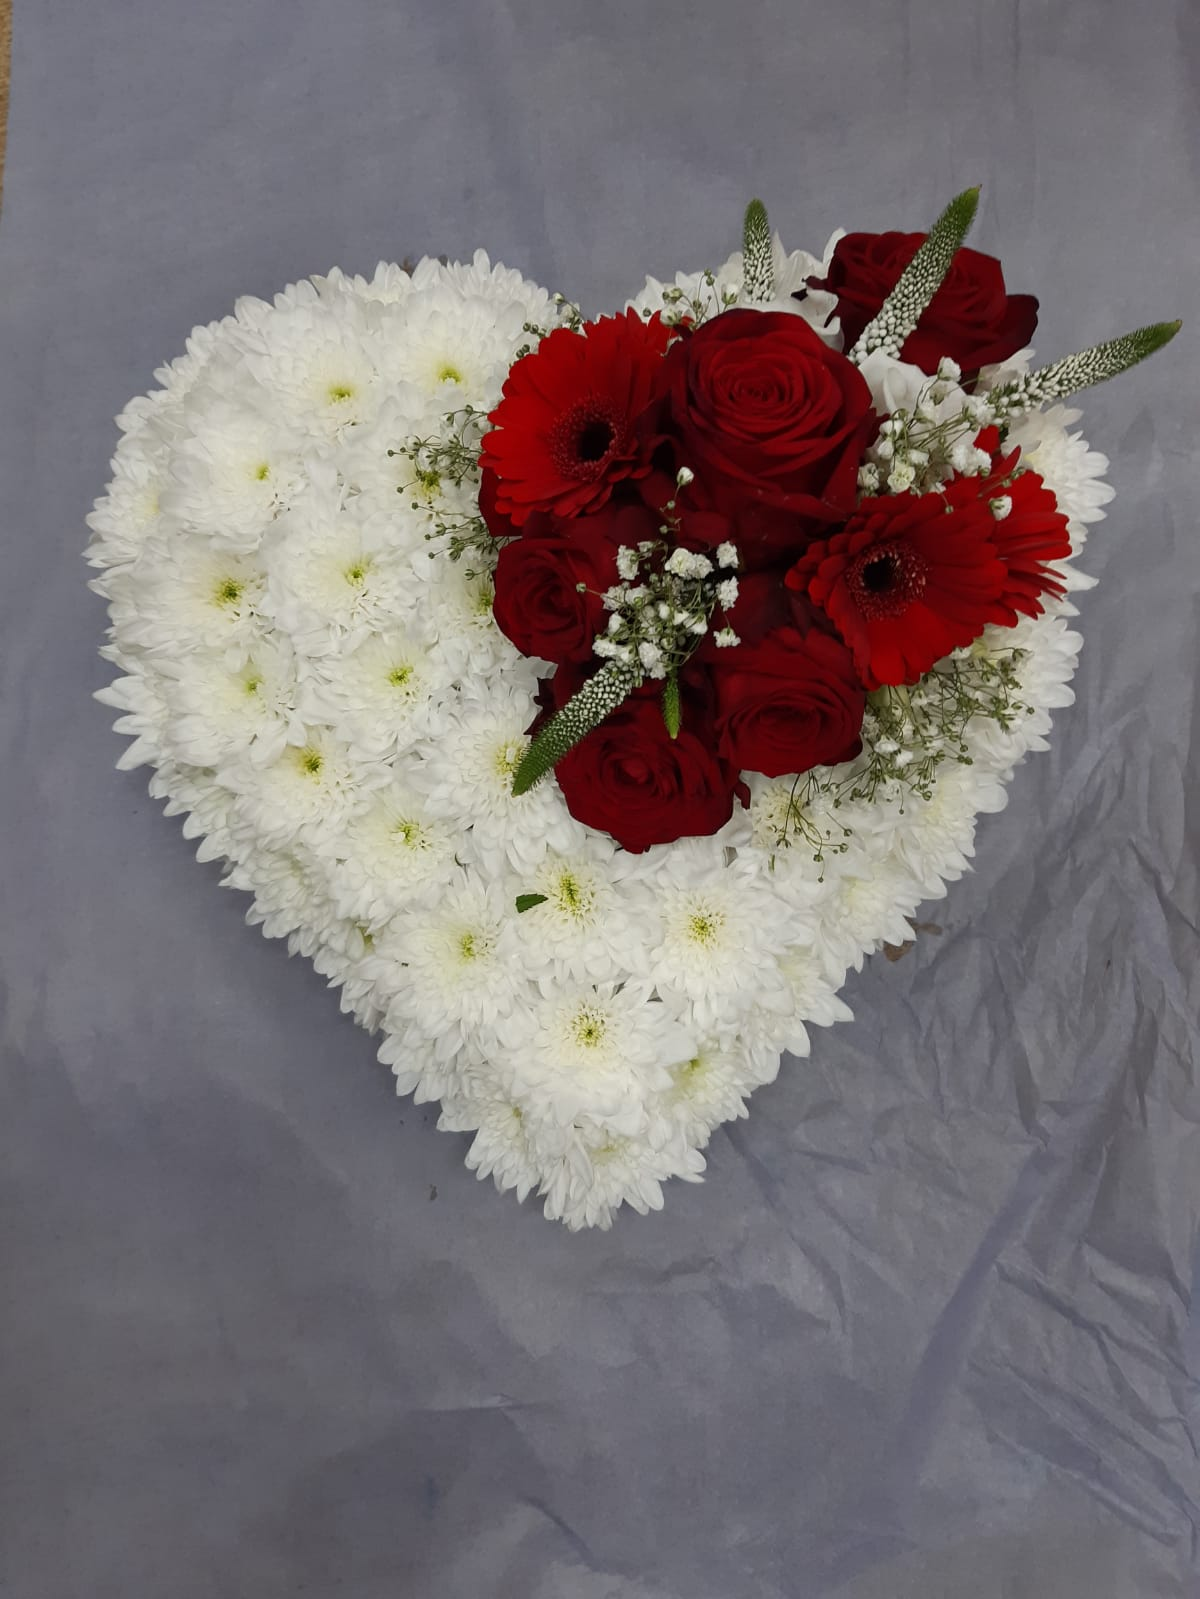 Funeral base white with red Germini roses gyp veronica